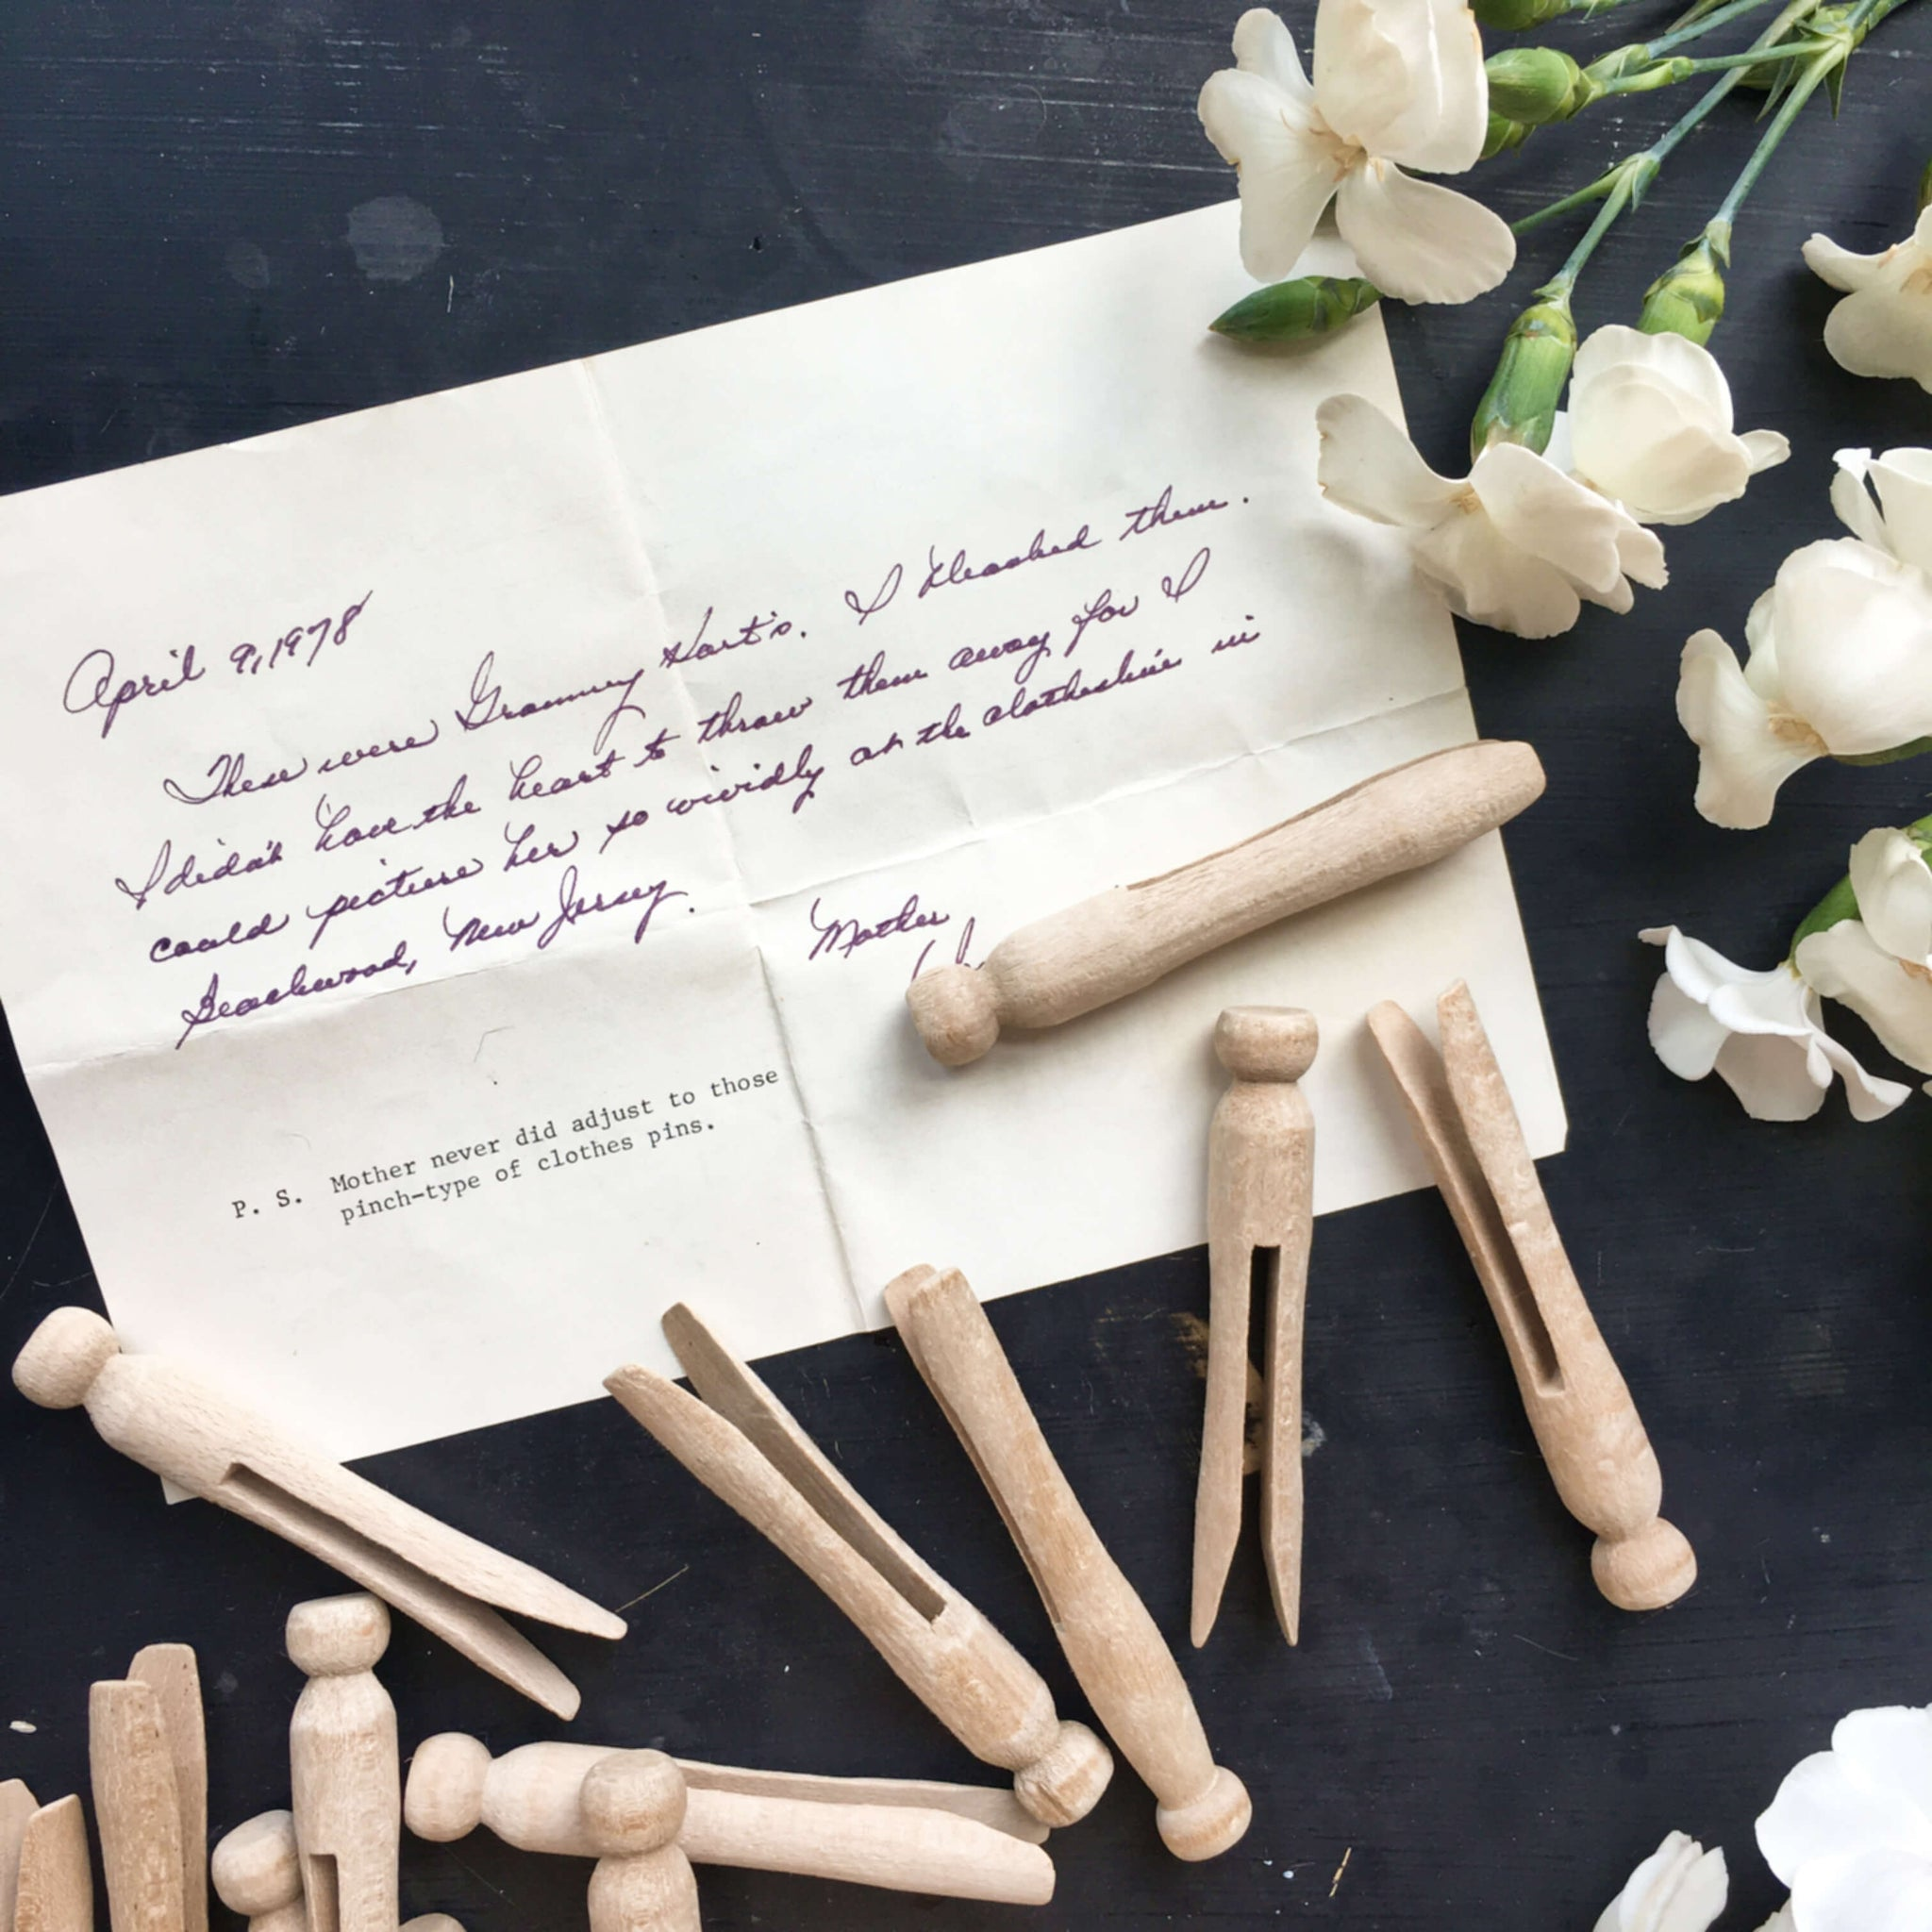 Vintage Clothespins Collection -  Set of 26 - Circa 1950's Beachwood, New Jersey - With Handwritten Note